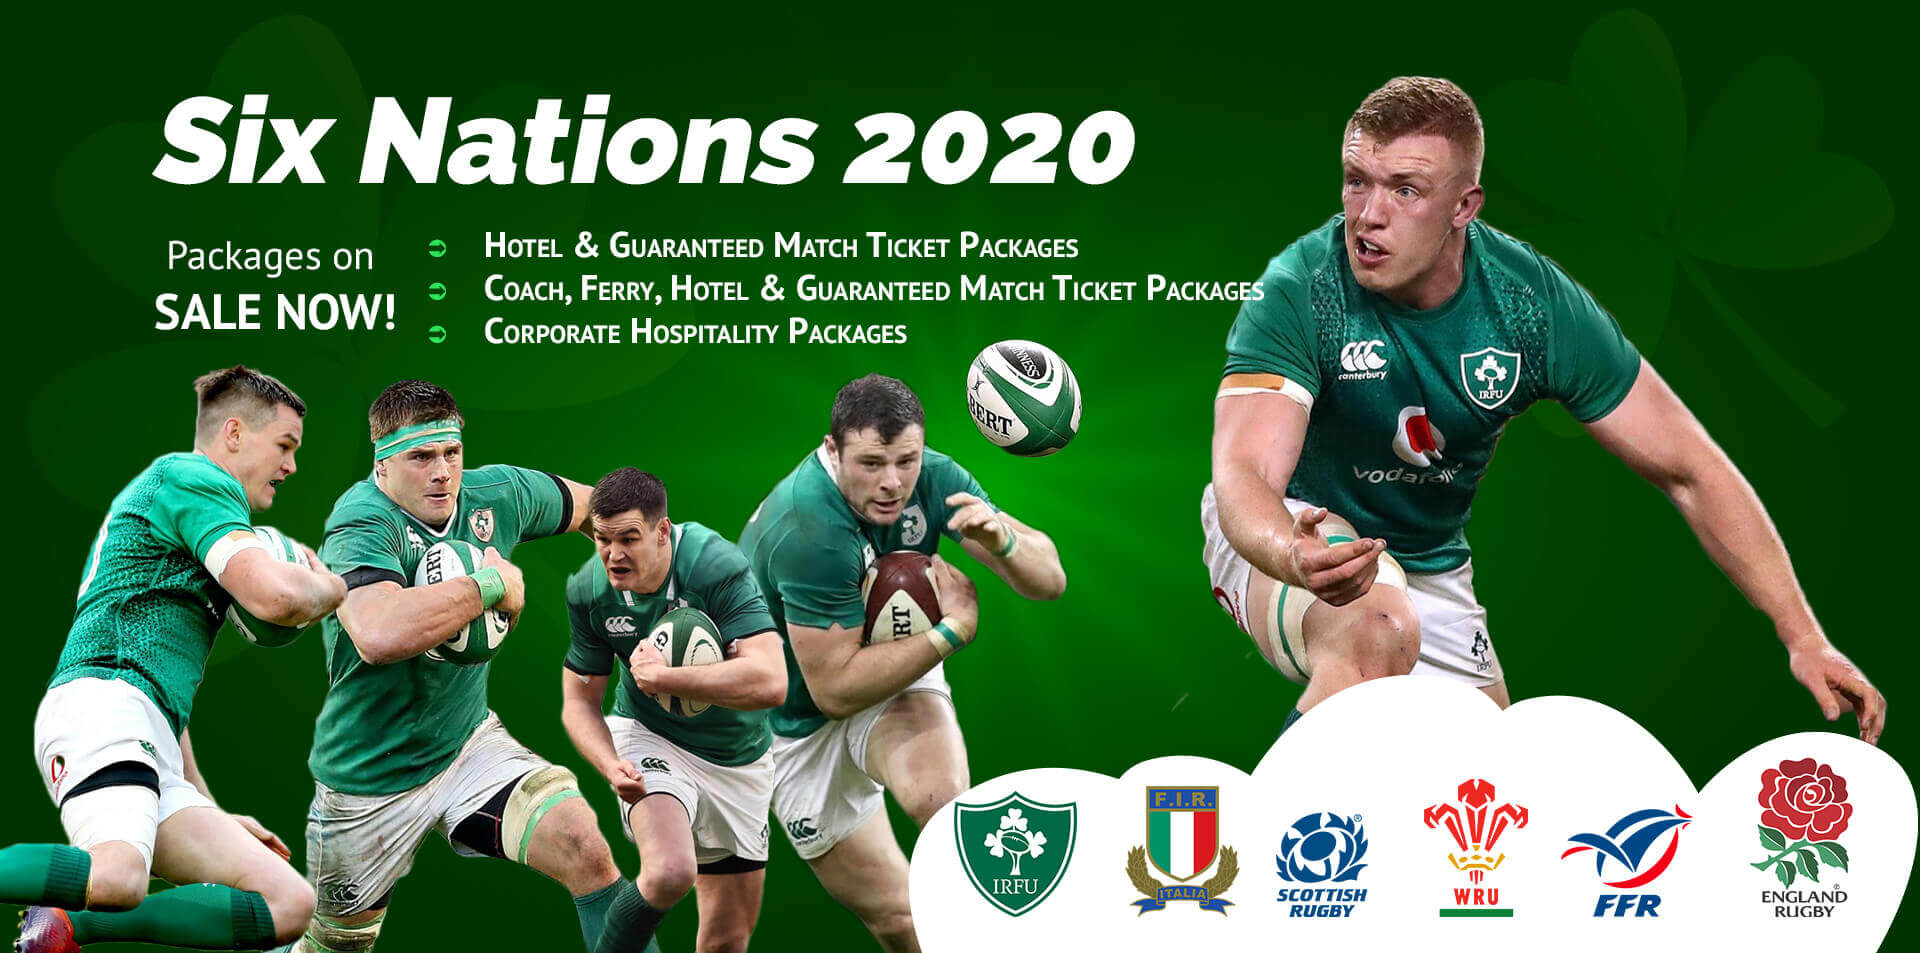 Six Nations 2020 Packages